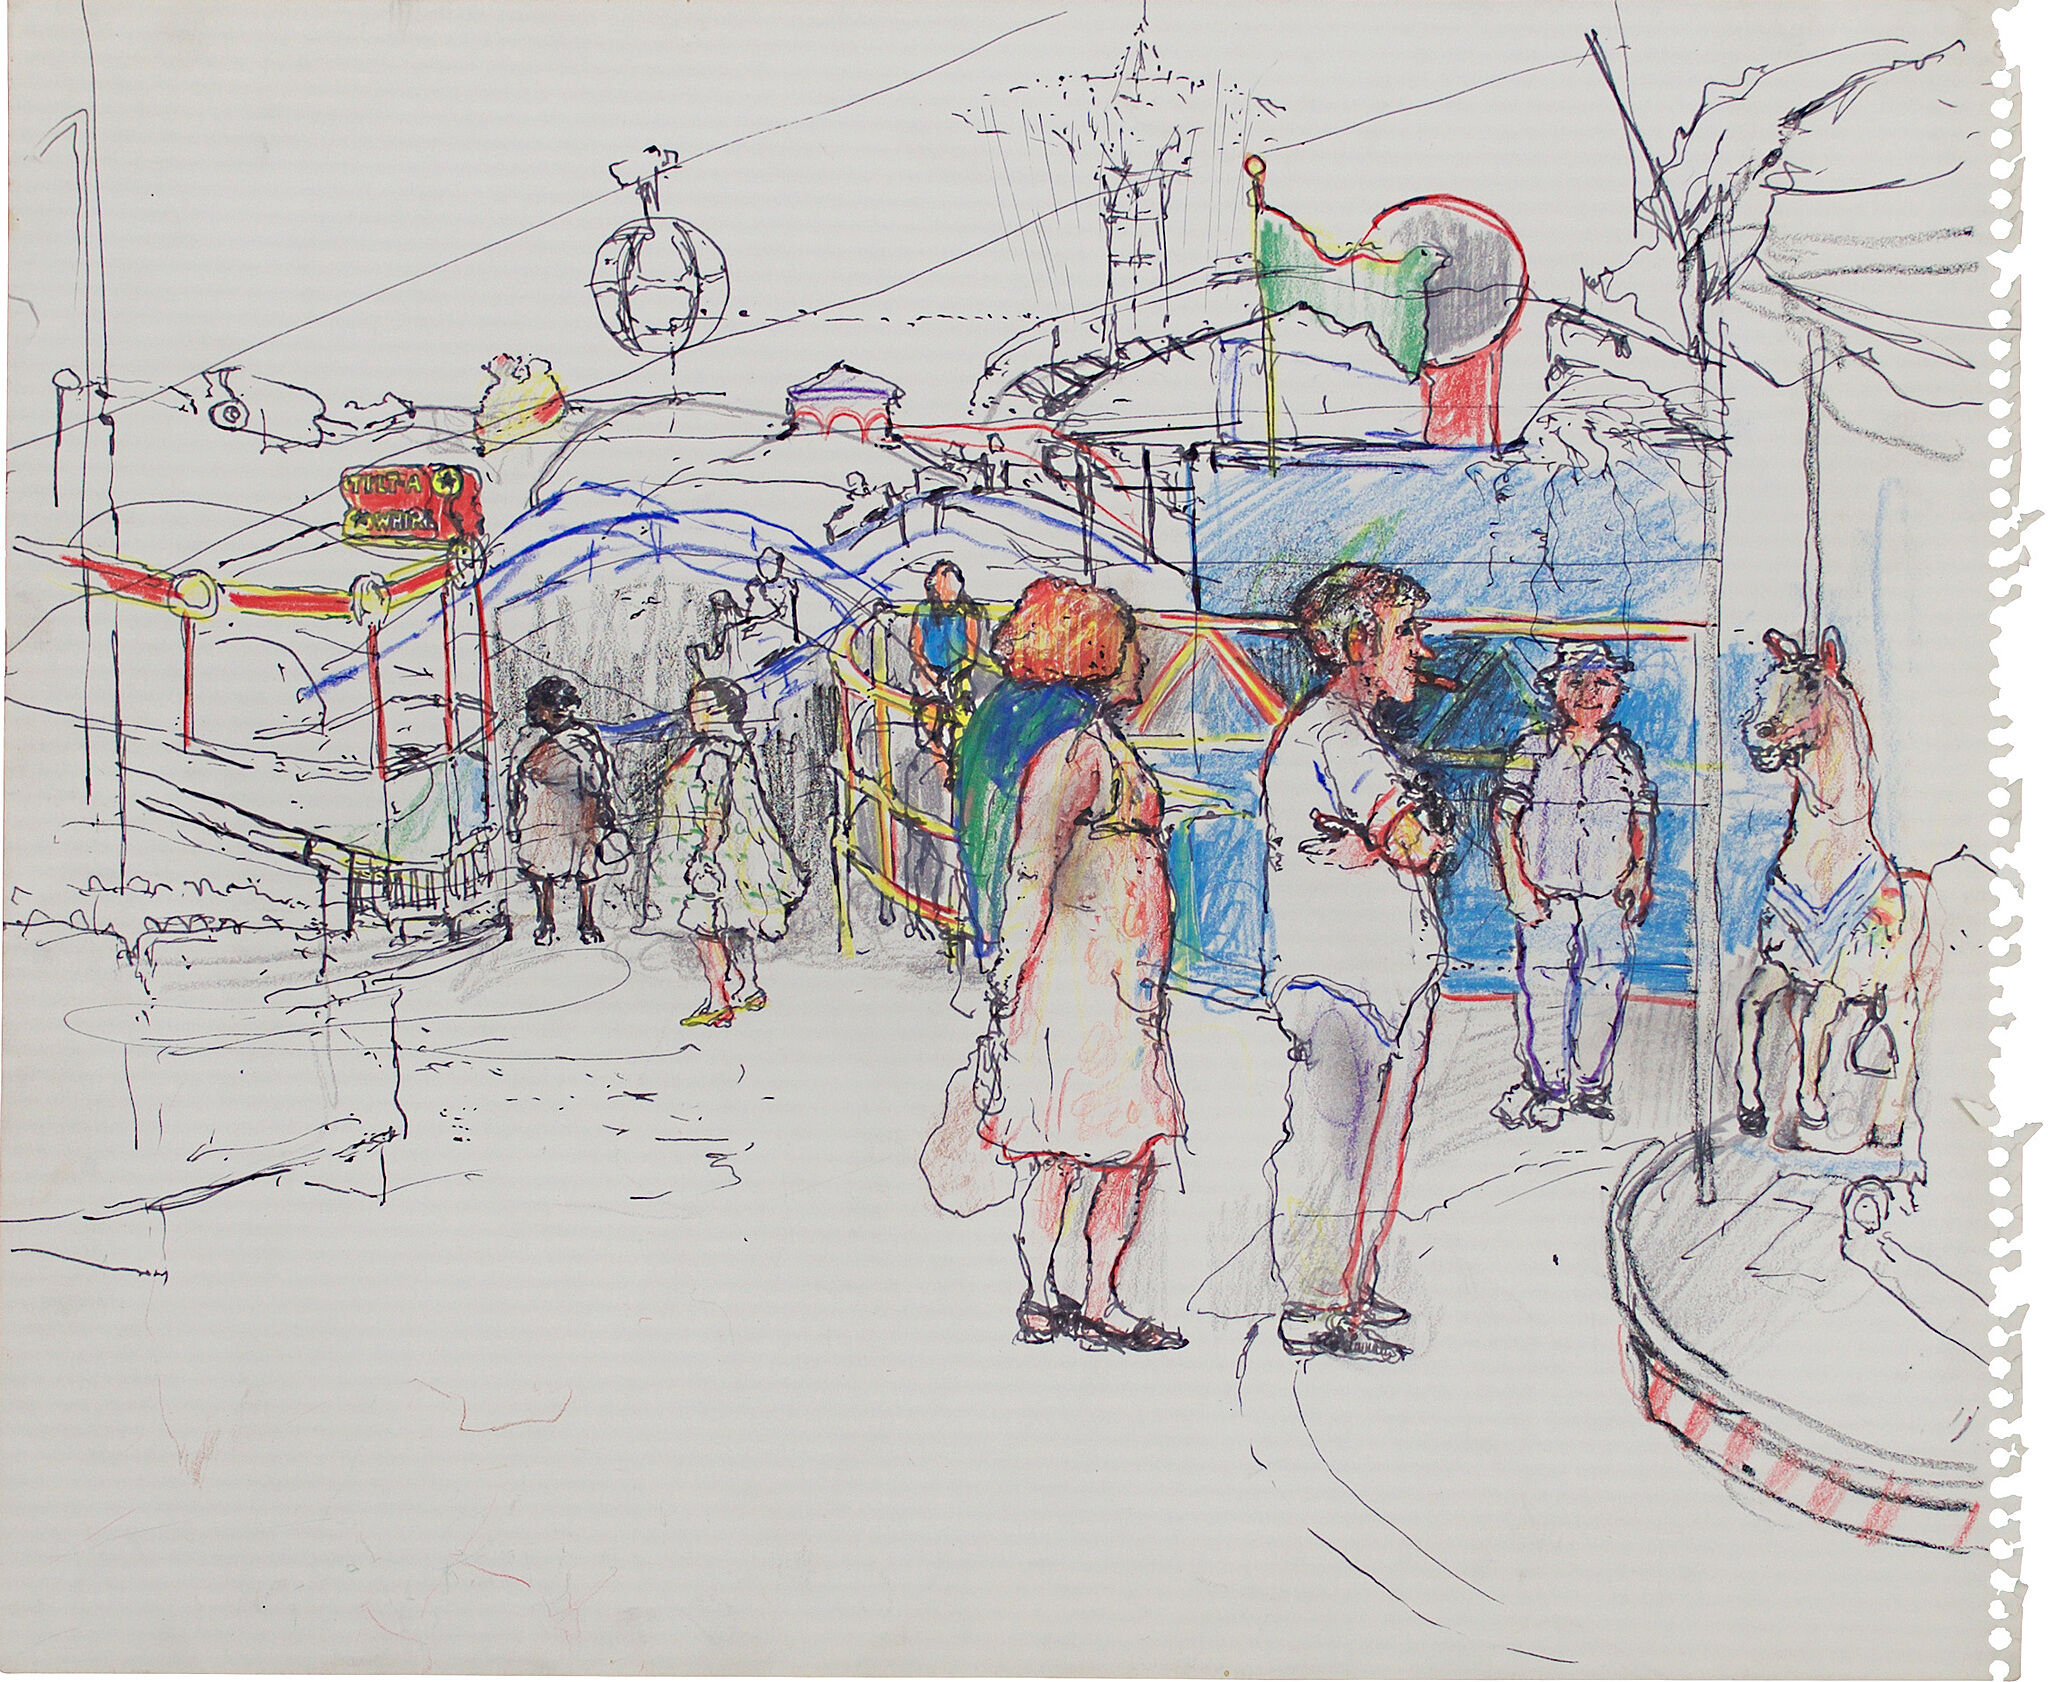 June Leaf's Coney Island, Pen and ink and colored pencil on paper.